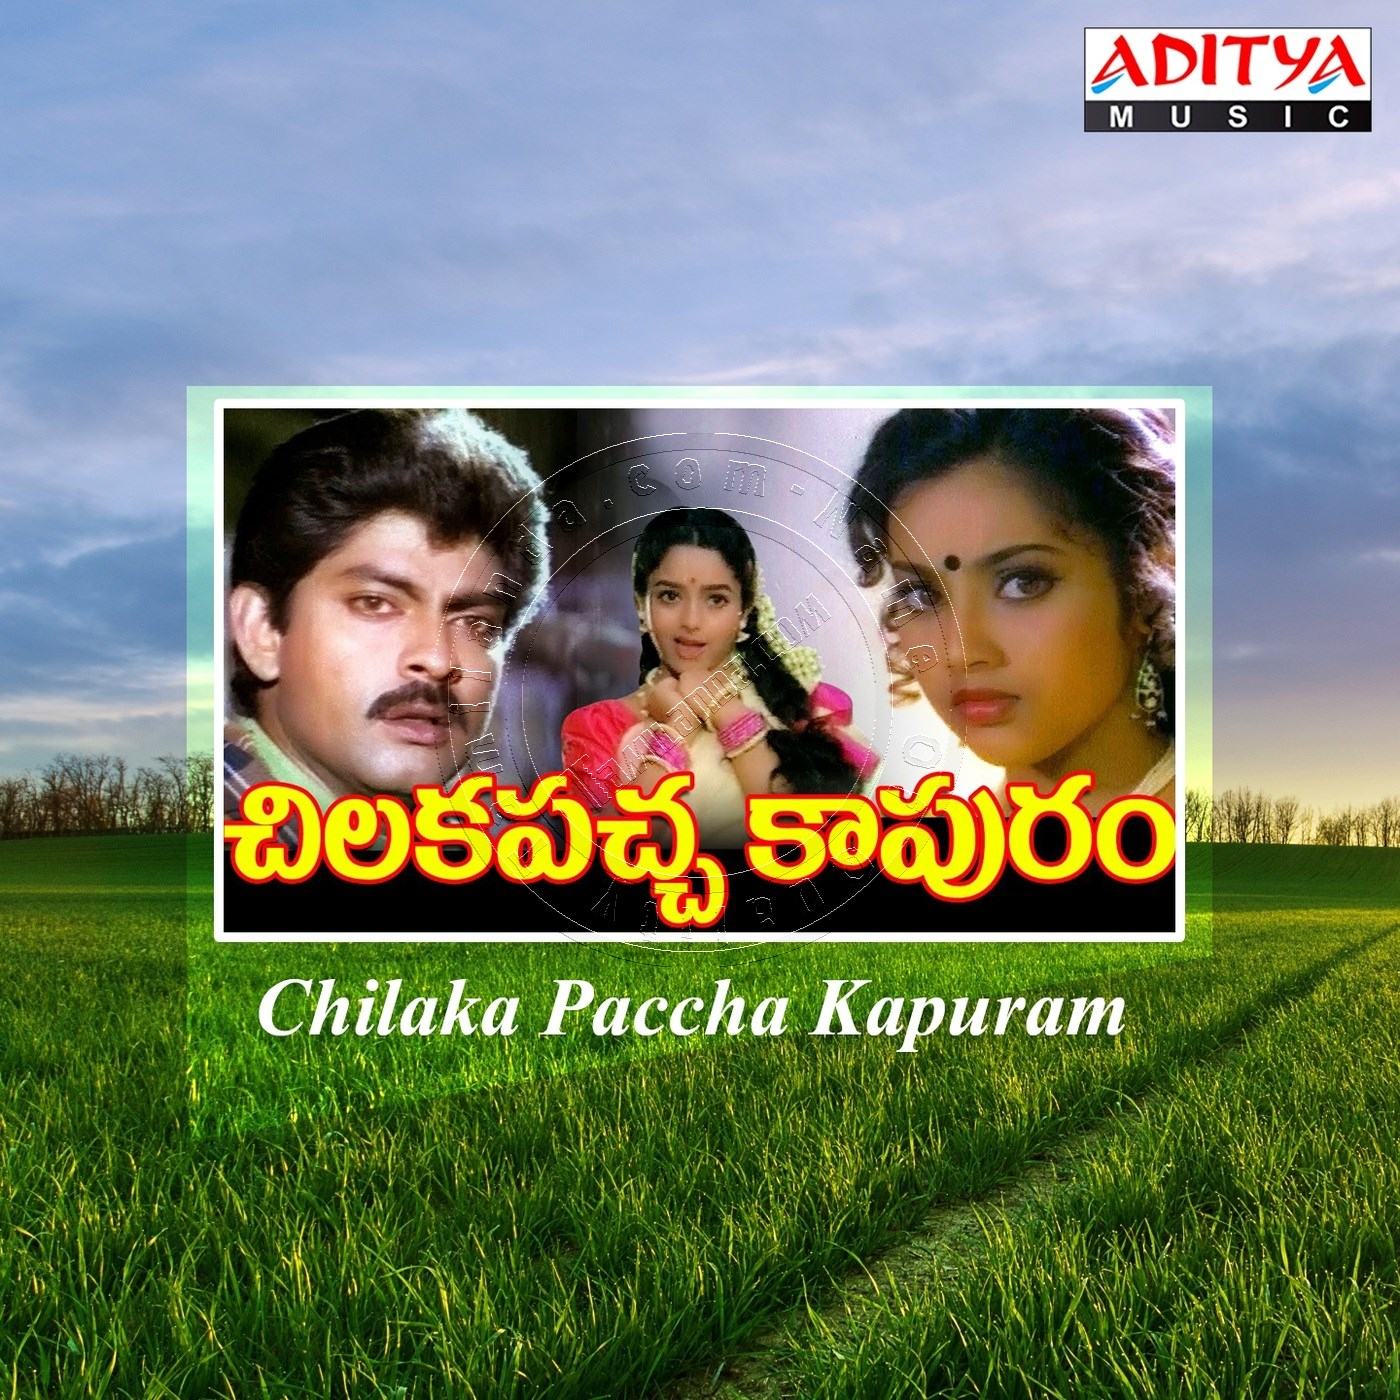 Chilaka Paccha Kapuram FLAC Songs